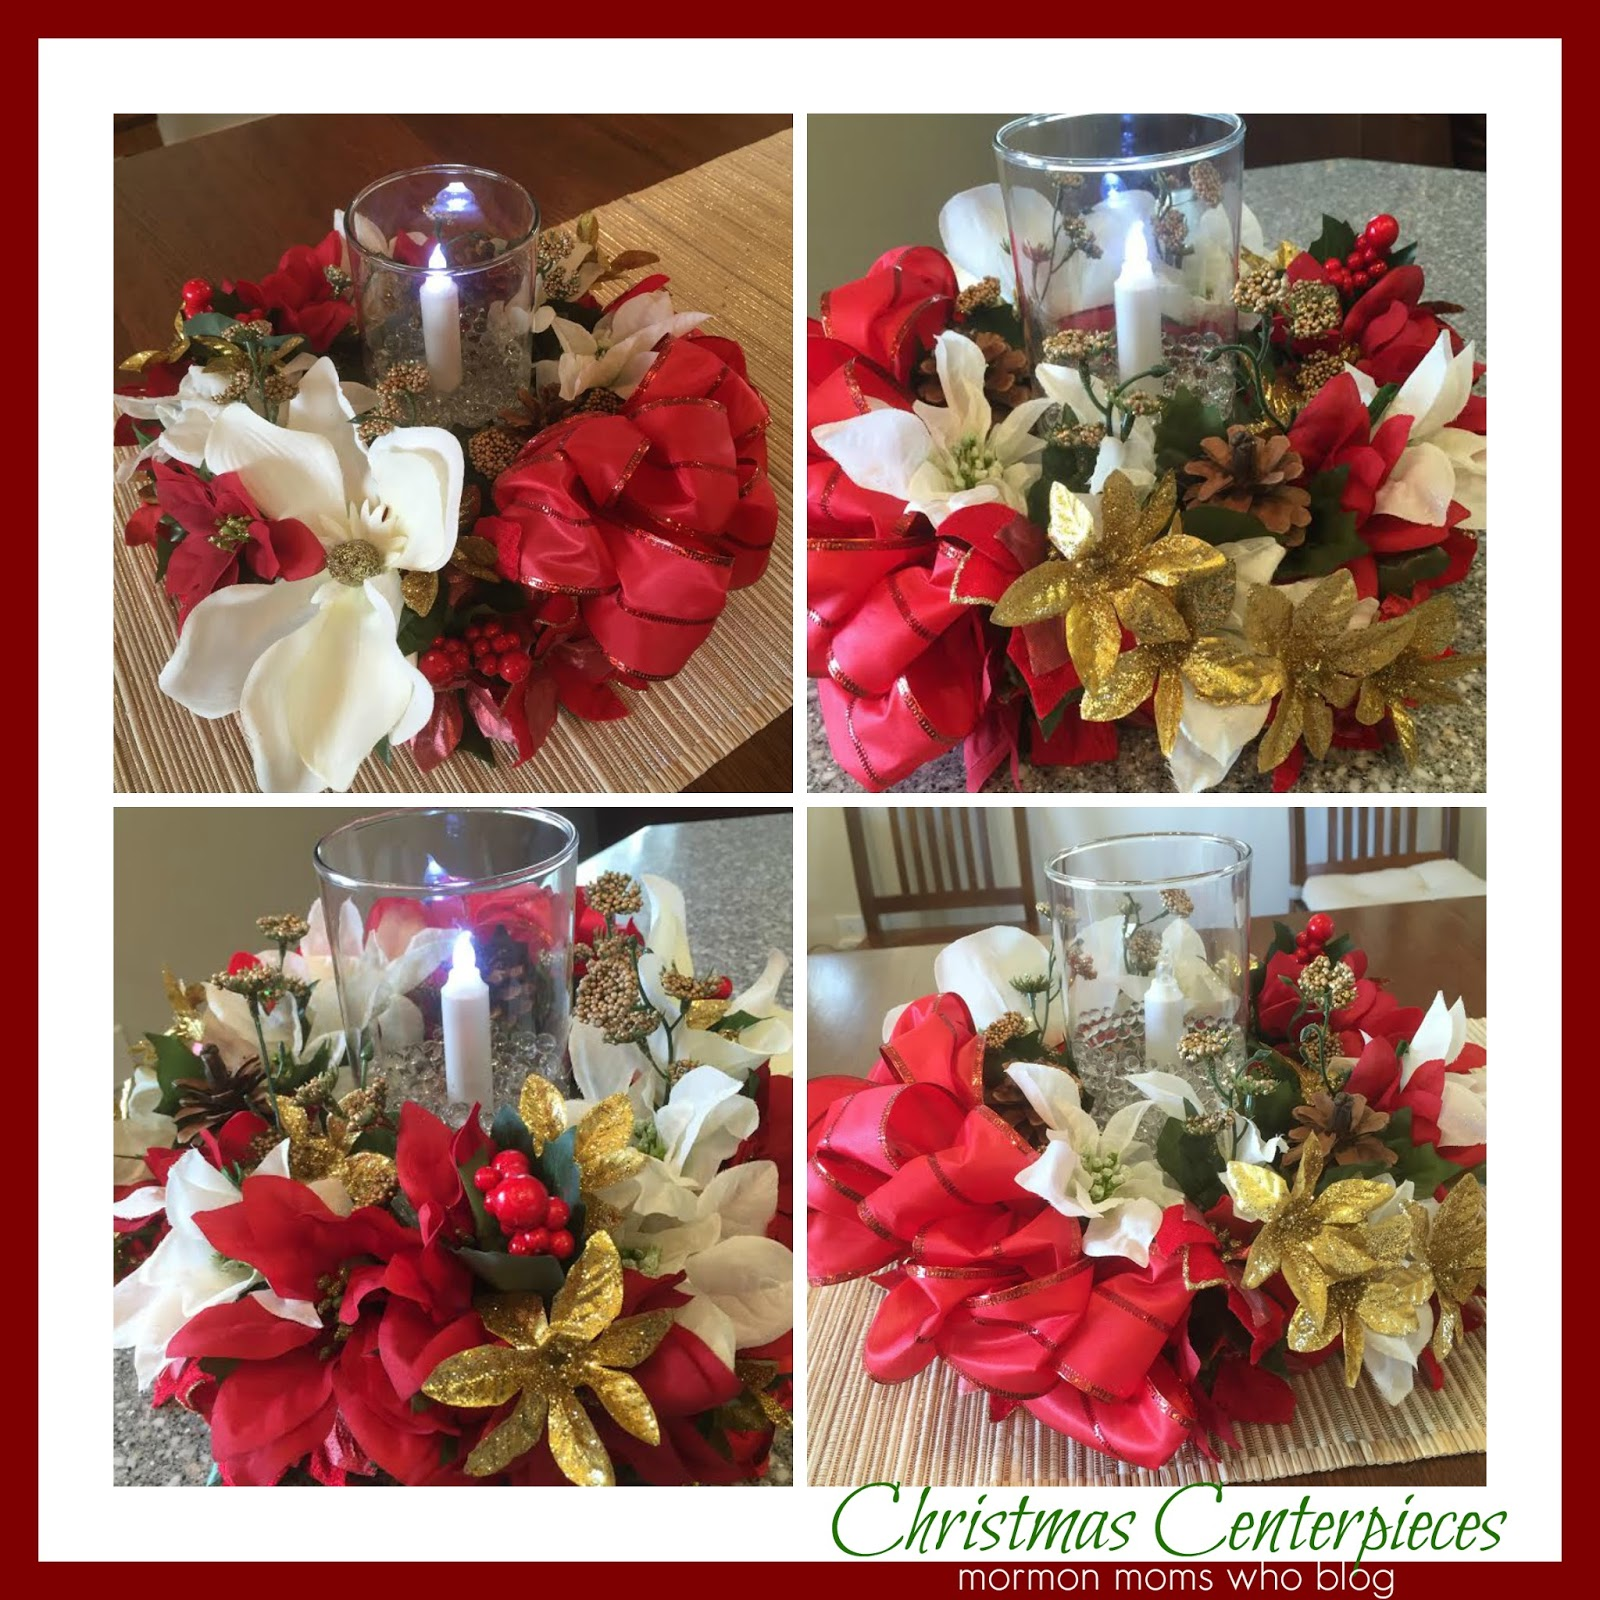 Here S An Inexpensive Idea For Beautiful Christmas Table Centerpieces Using Items From The Dollar